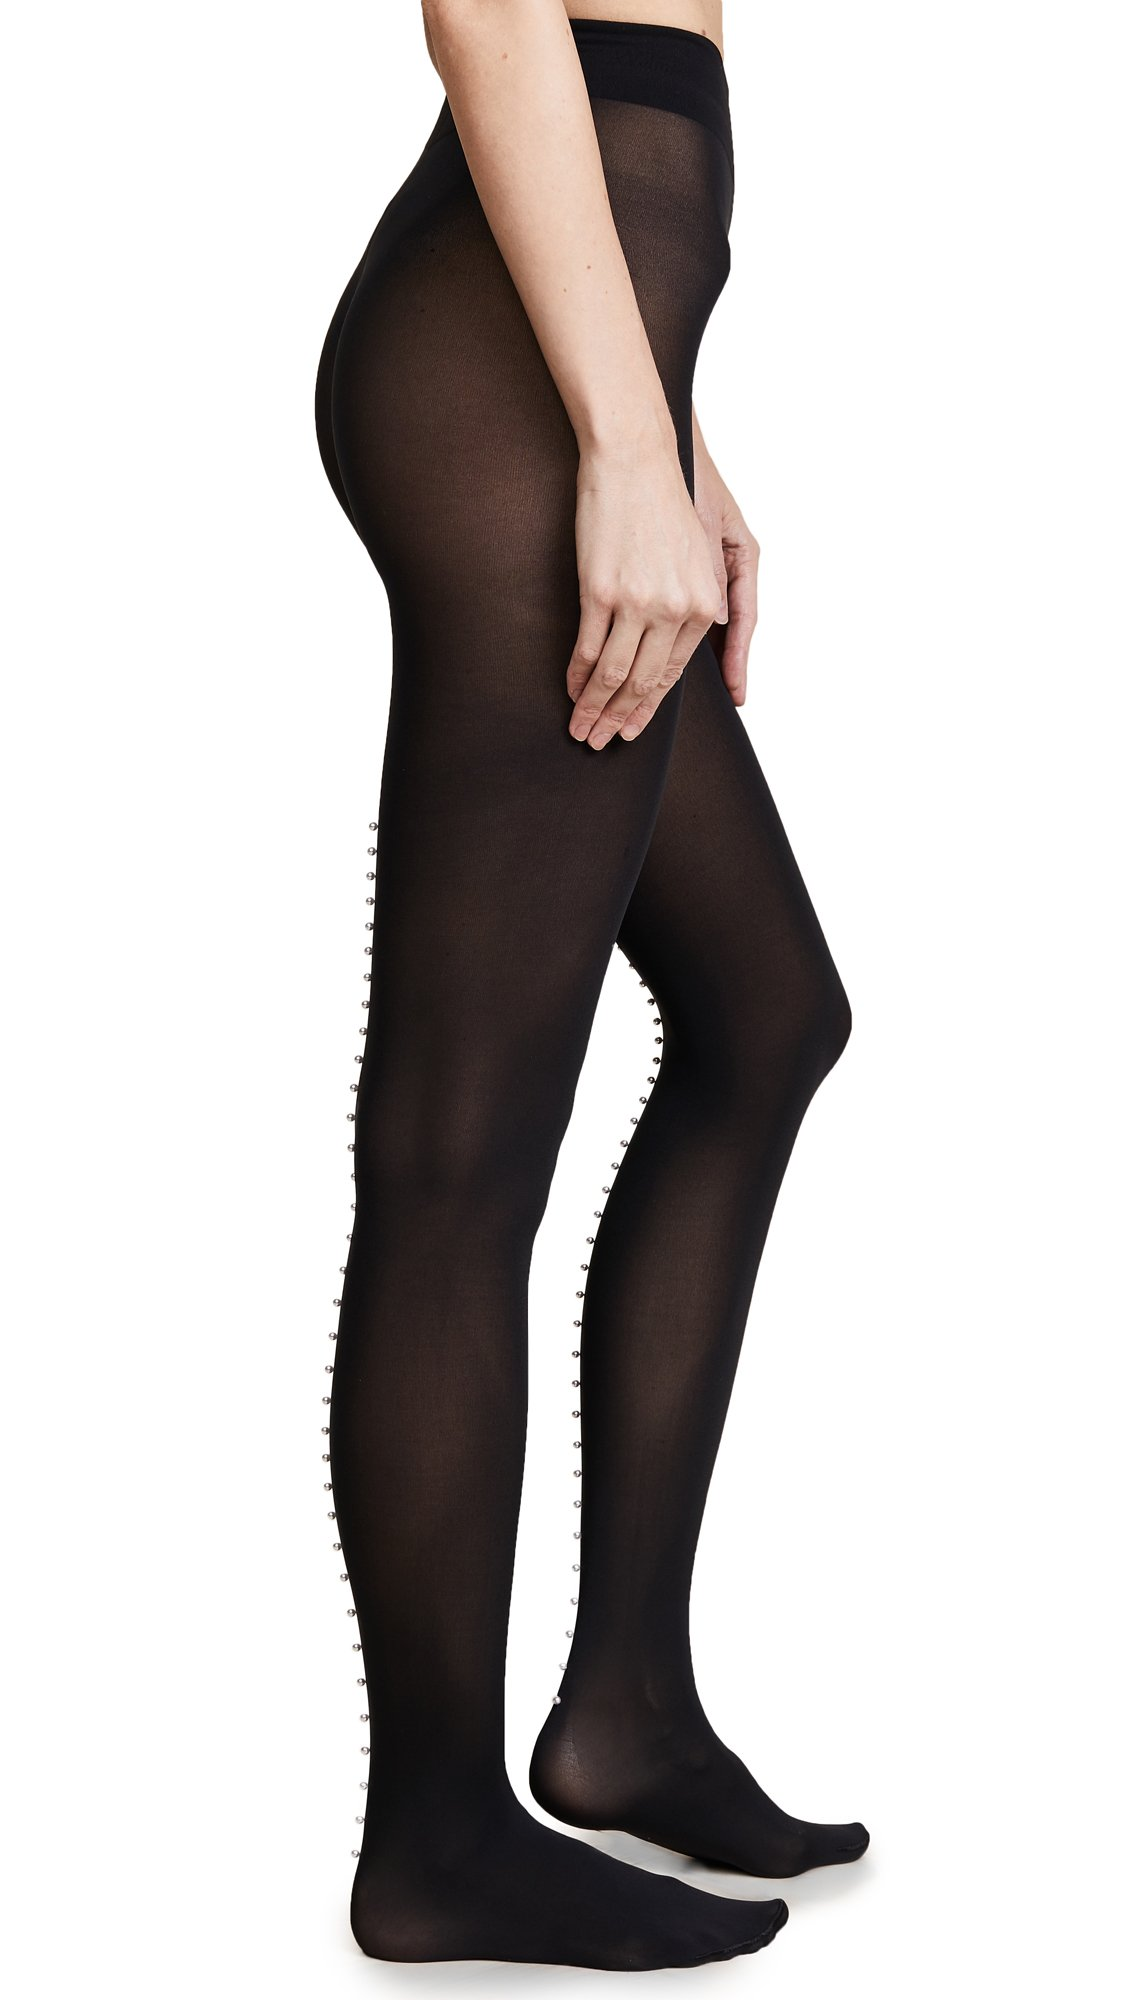 Wolford Women's Imitation Pearl Back Seam Tights, Black/Pearl, Large